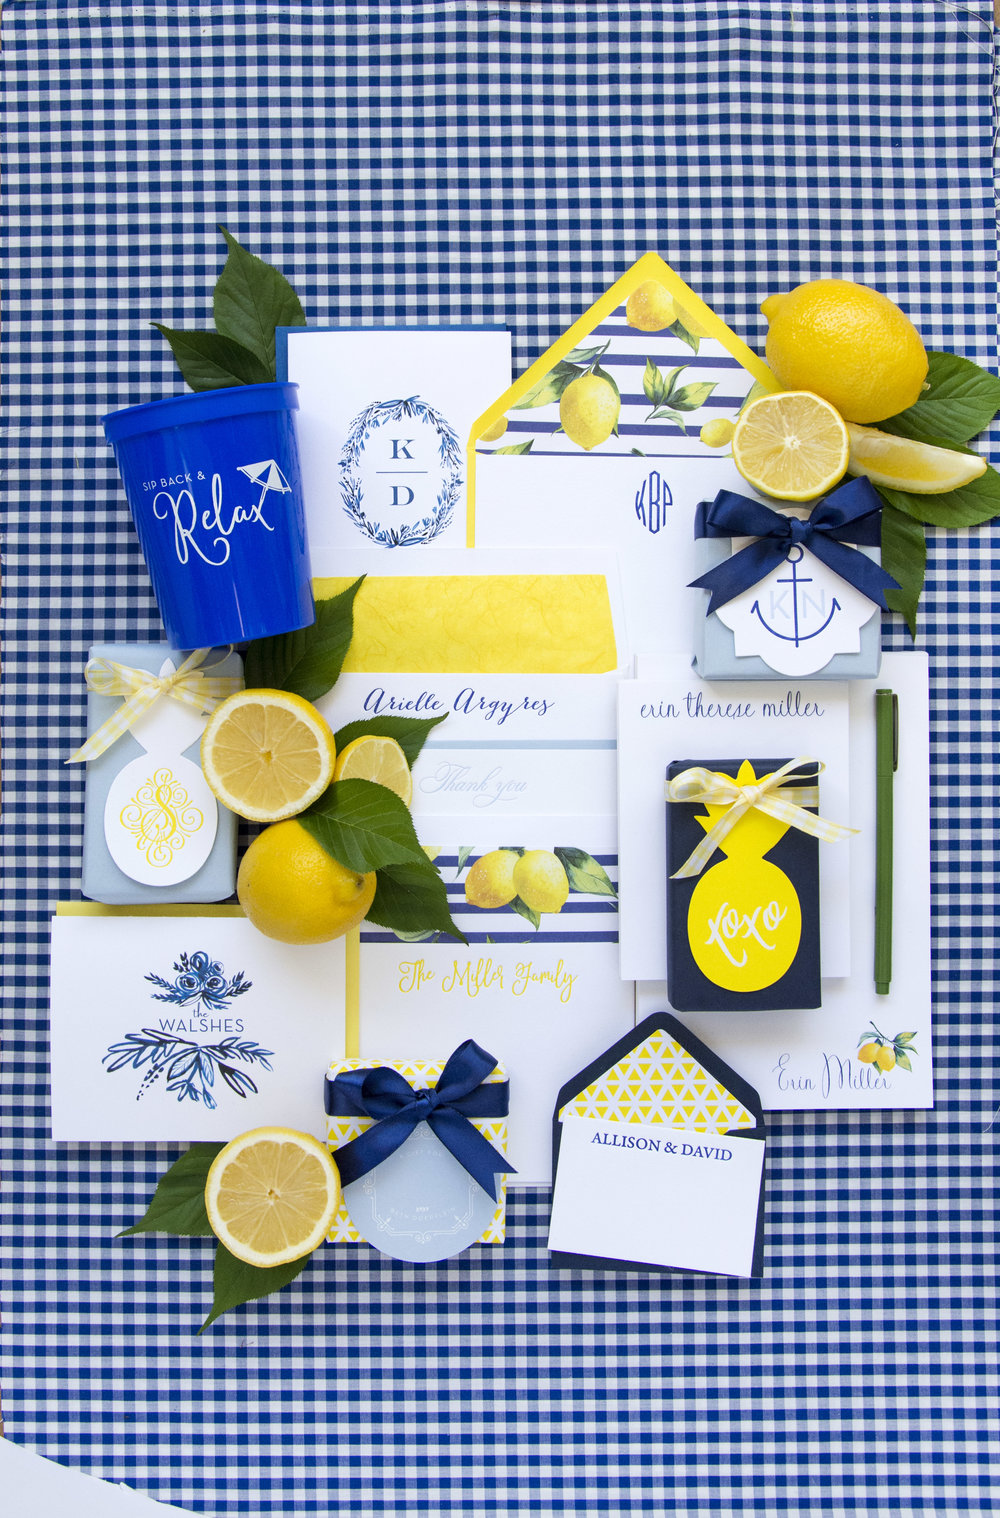 CNC_Mixed-PC-Relax_Stylized_Lemons_BluePlaid_HautePapier.JPG